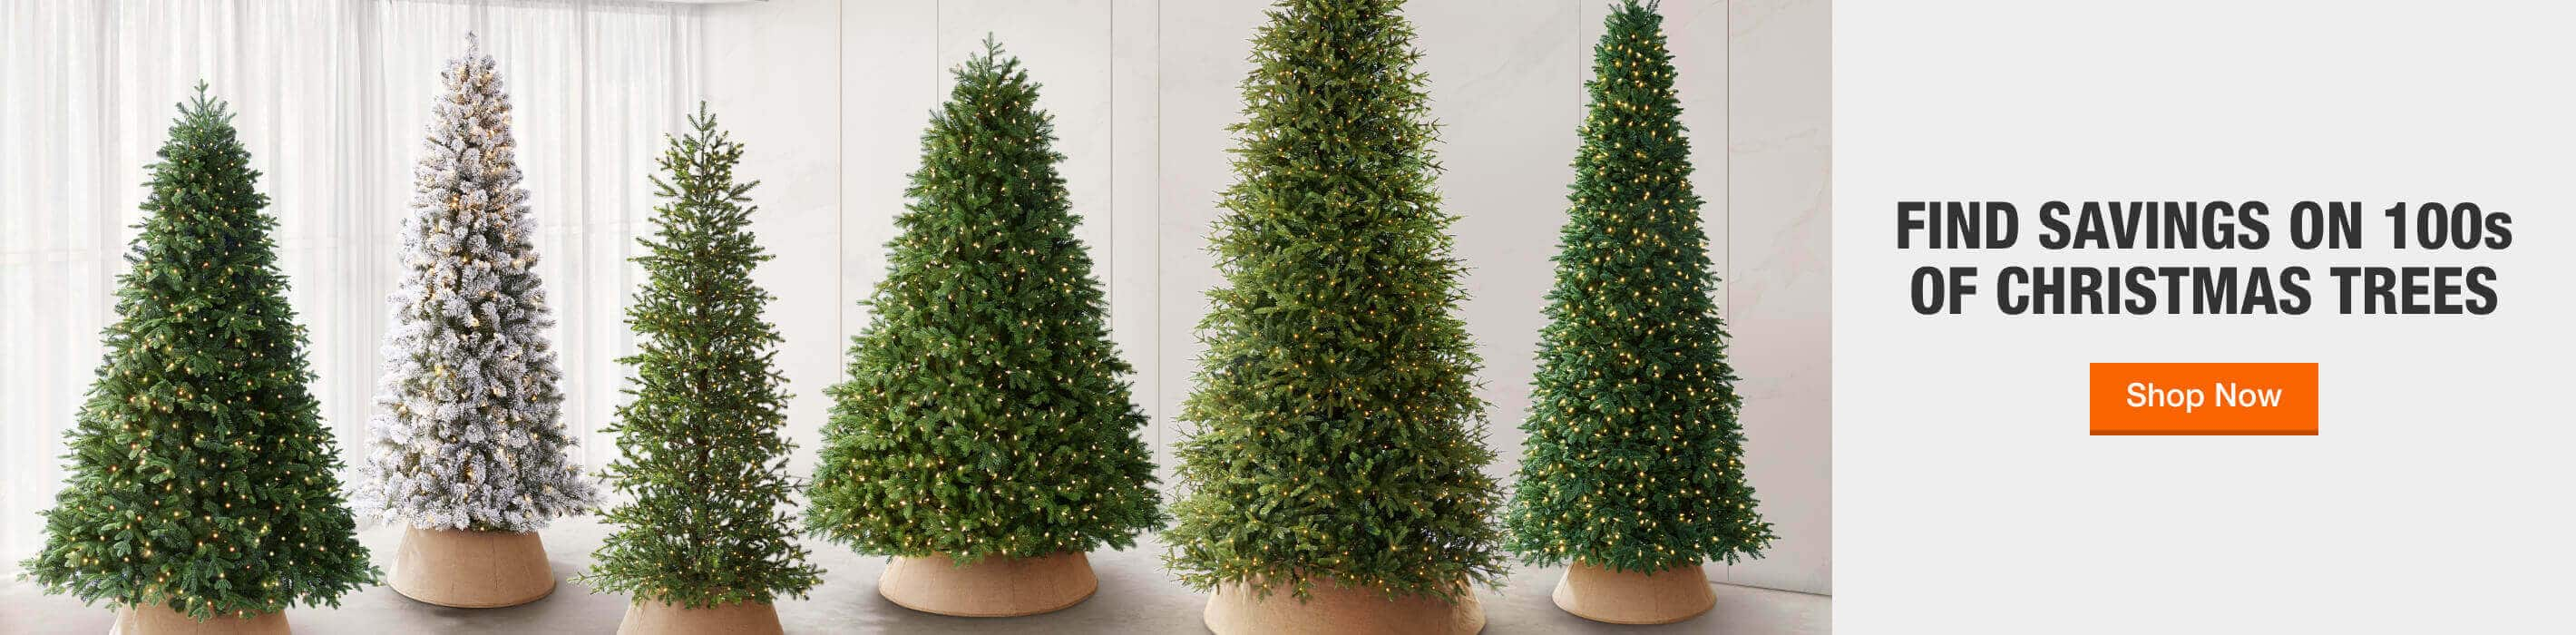 FIND SAVINGS ON 100s OF CHRISTMAS TREES - Shop Now